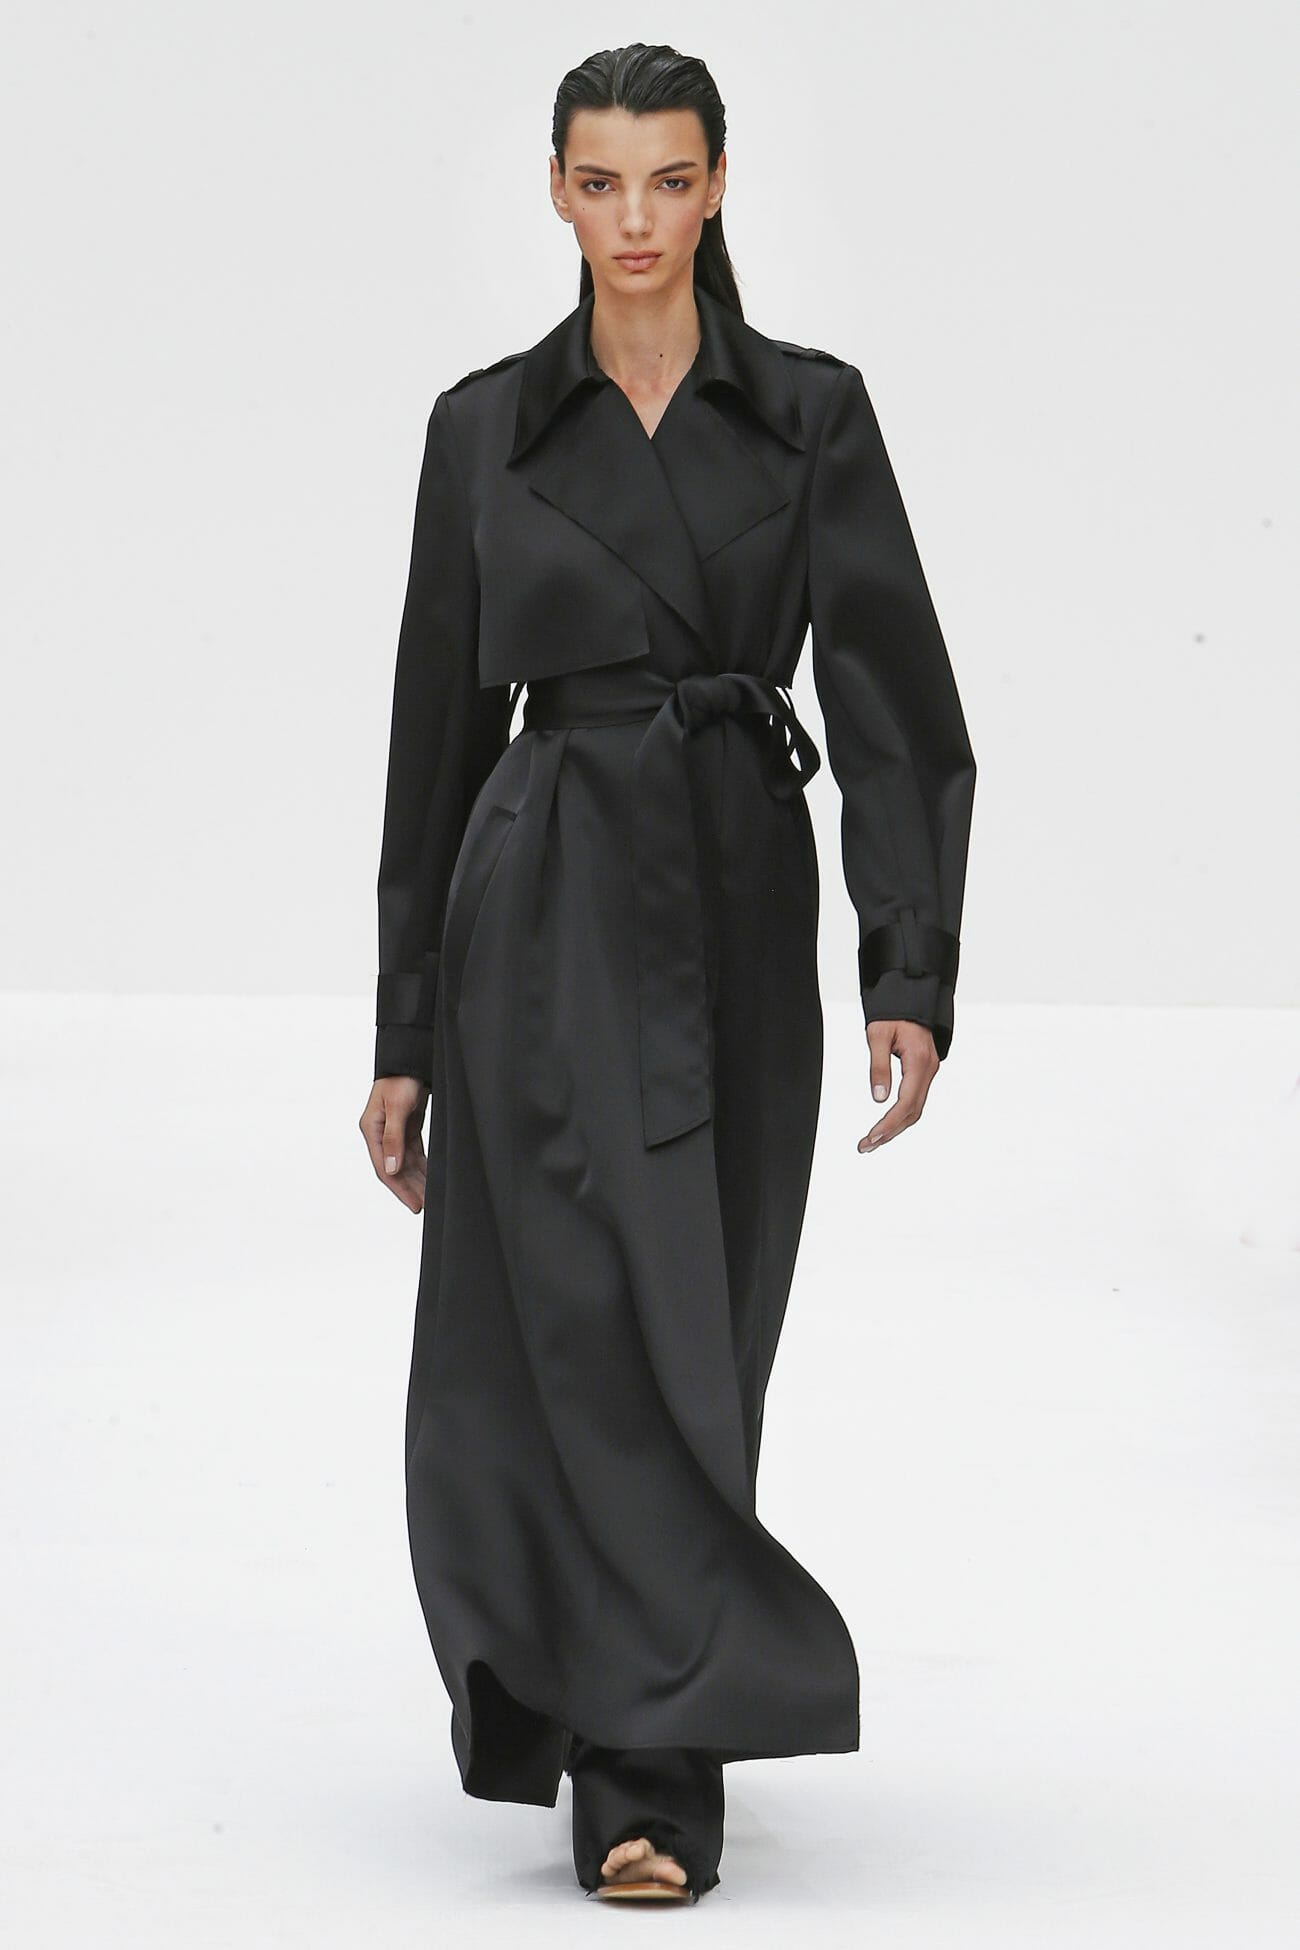 Carolina Herrera New York black trench coat